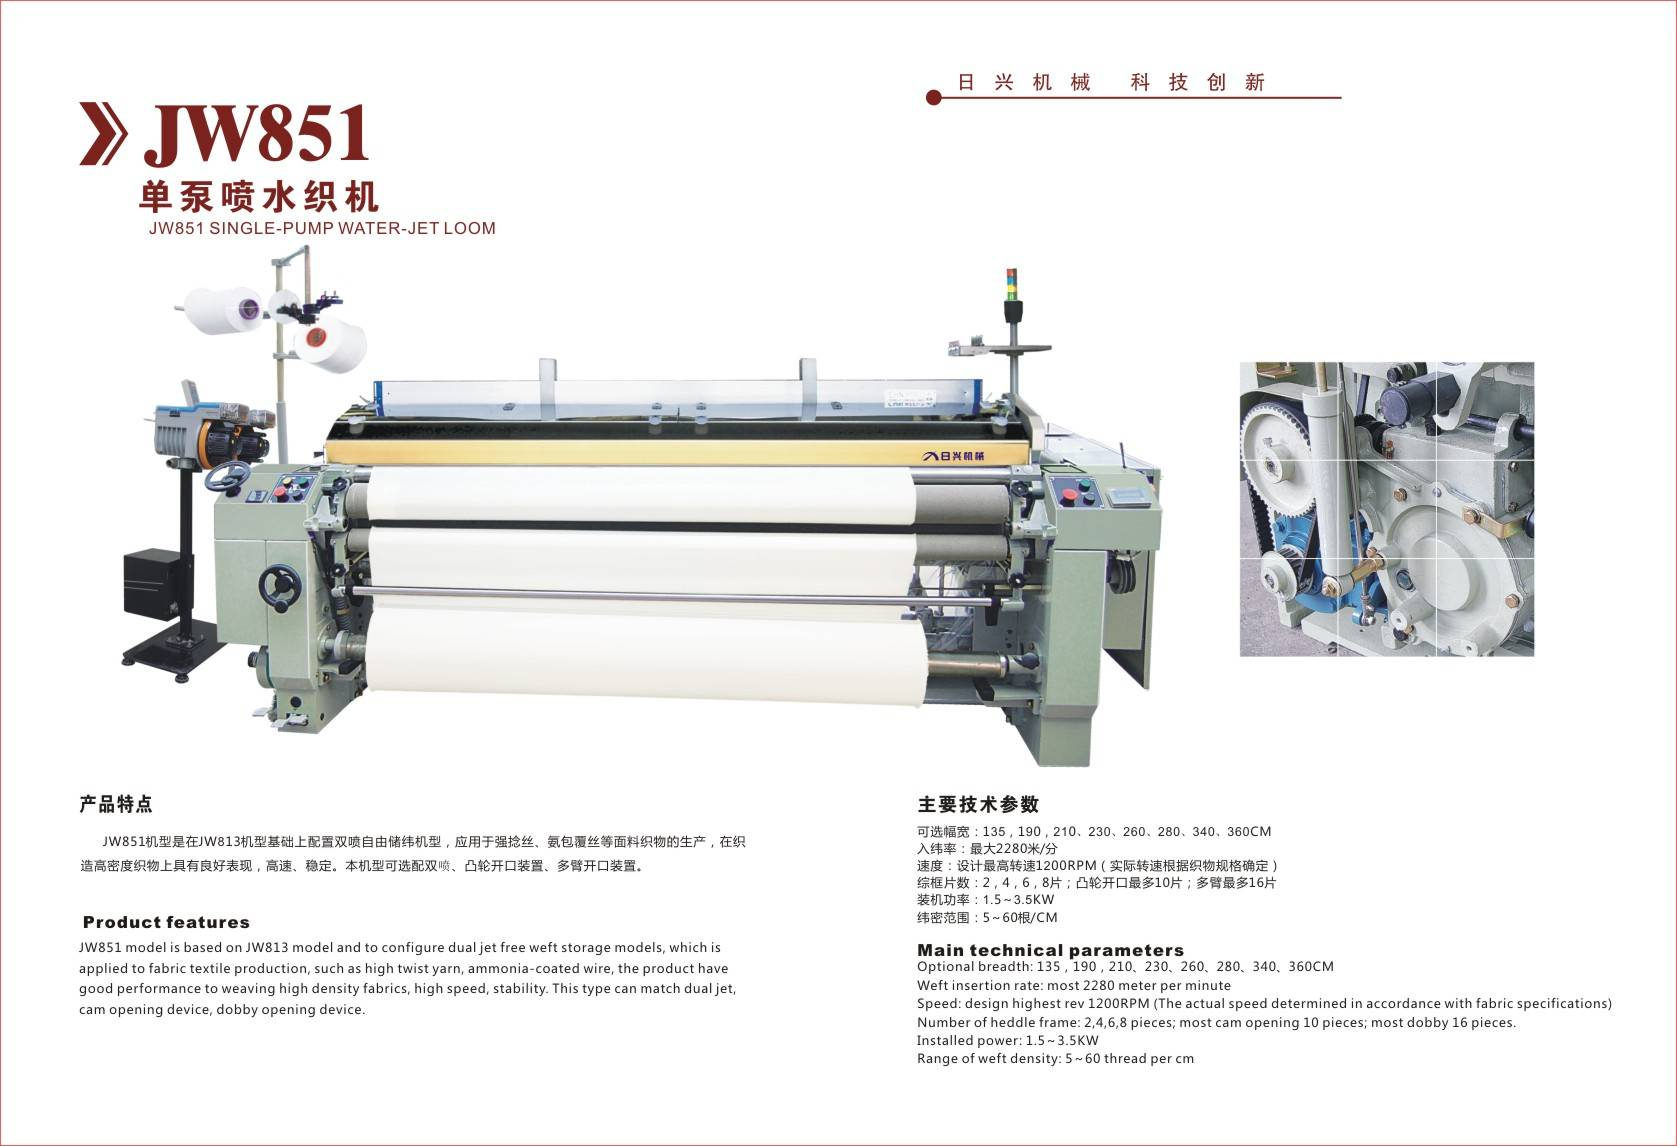 JW851 high quality water jet loom/weaving machine at low price